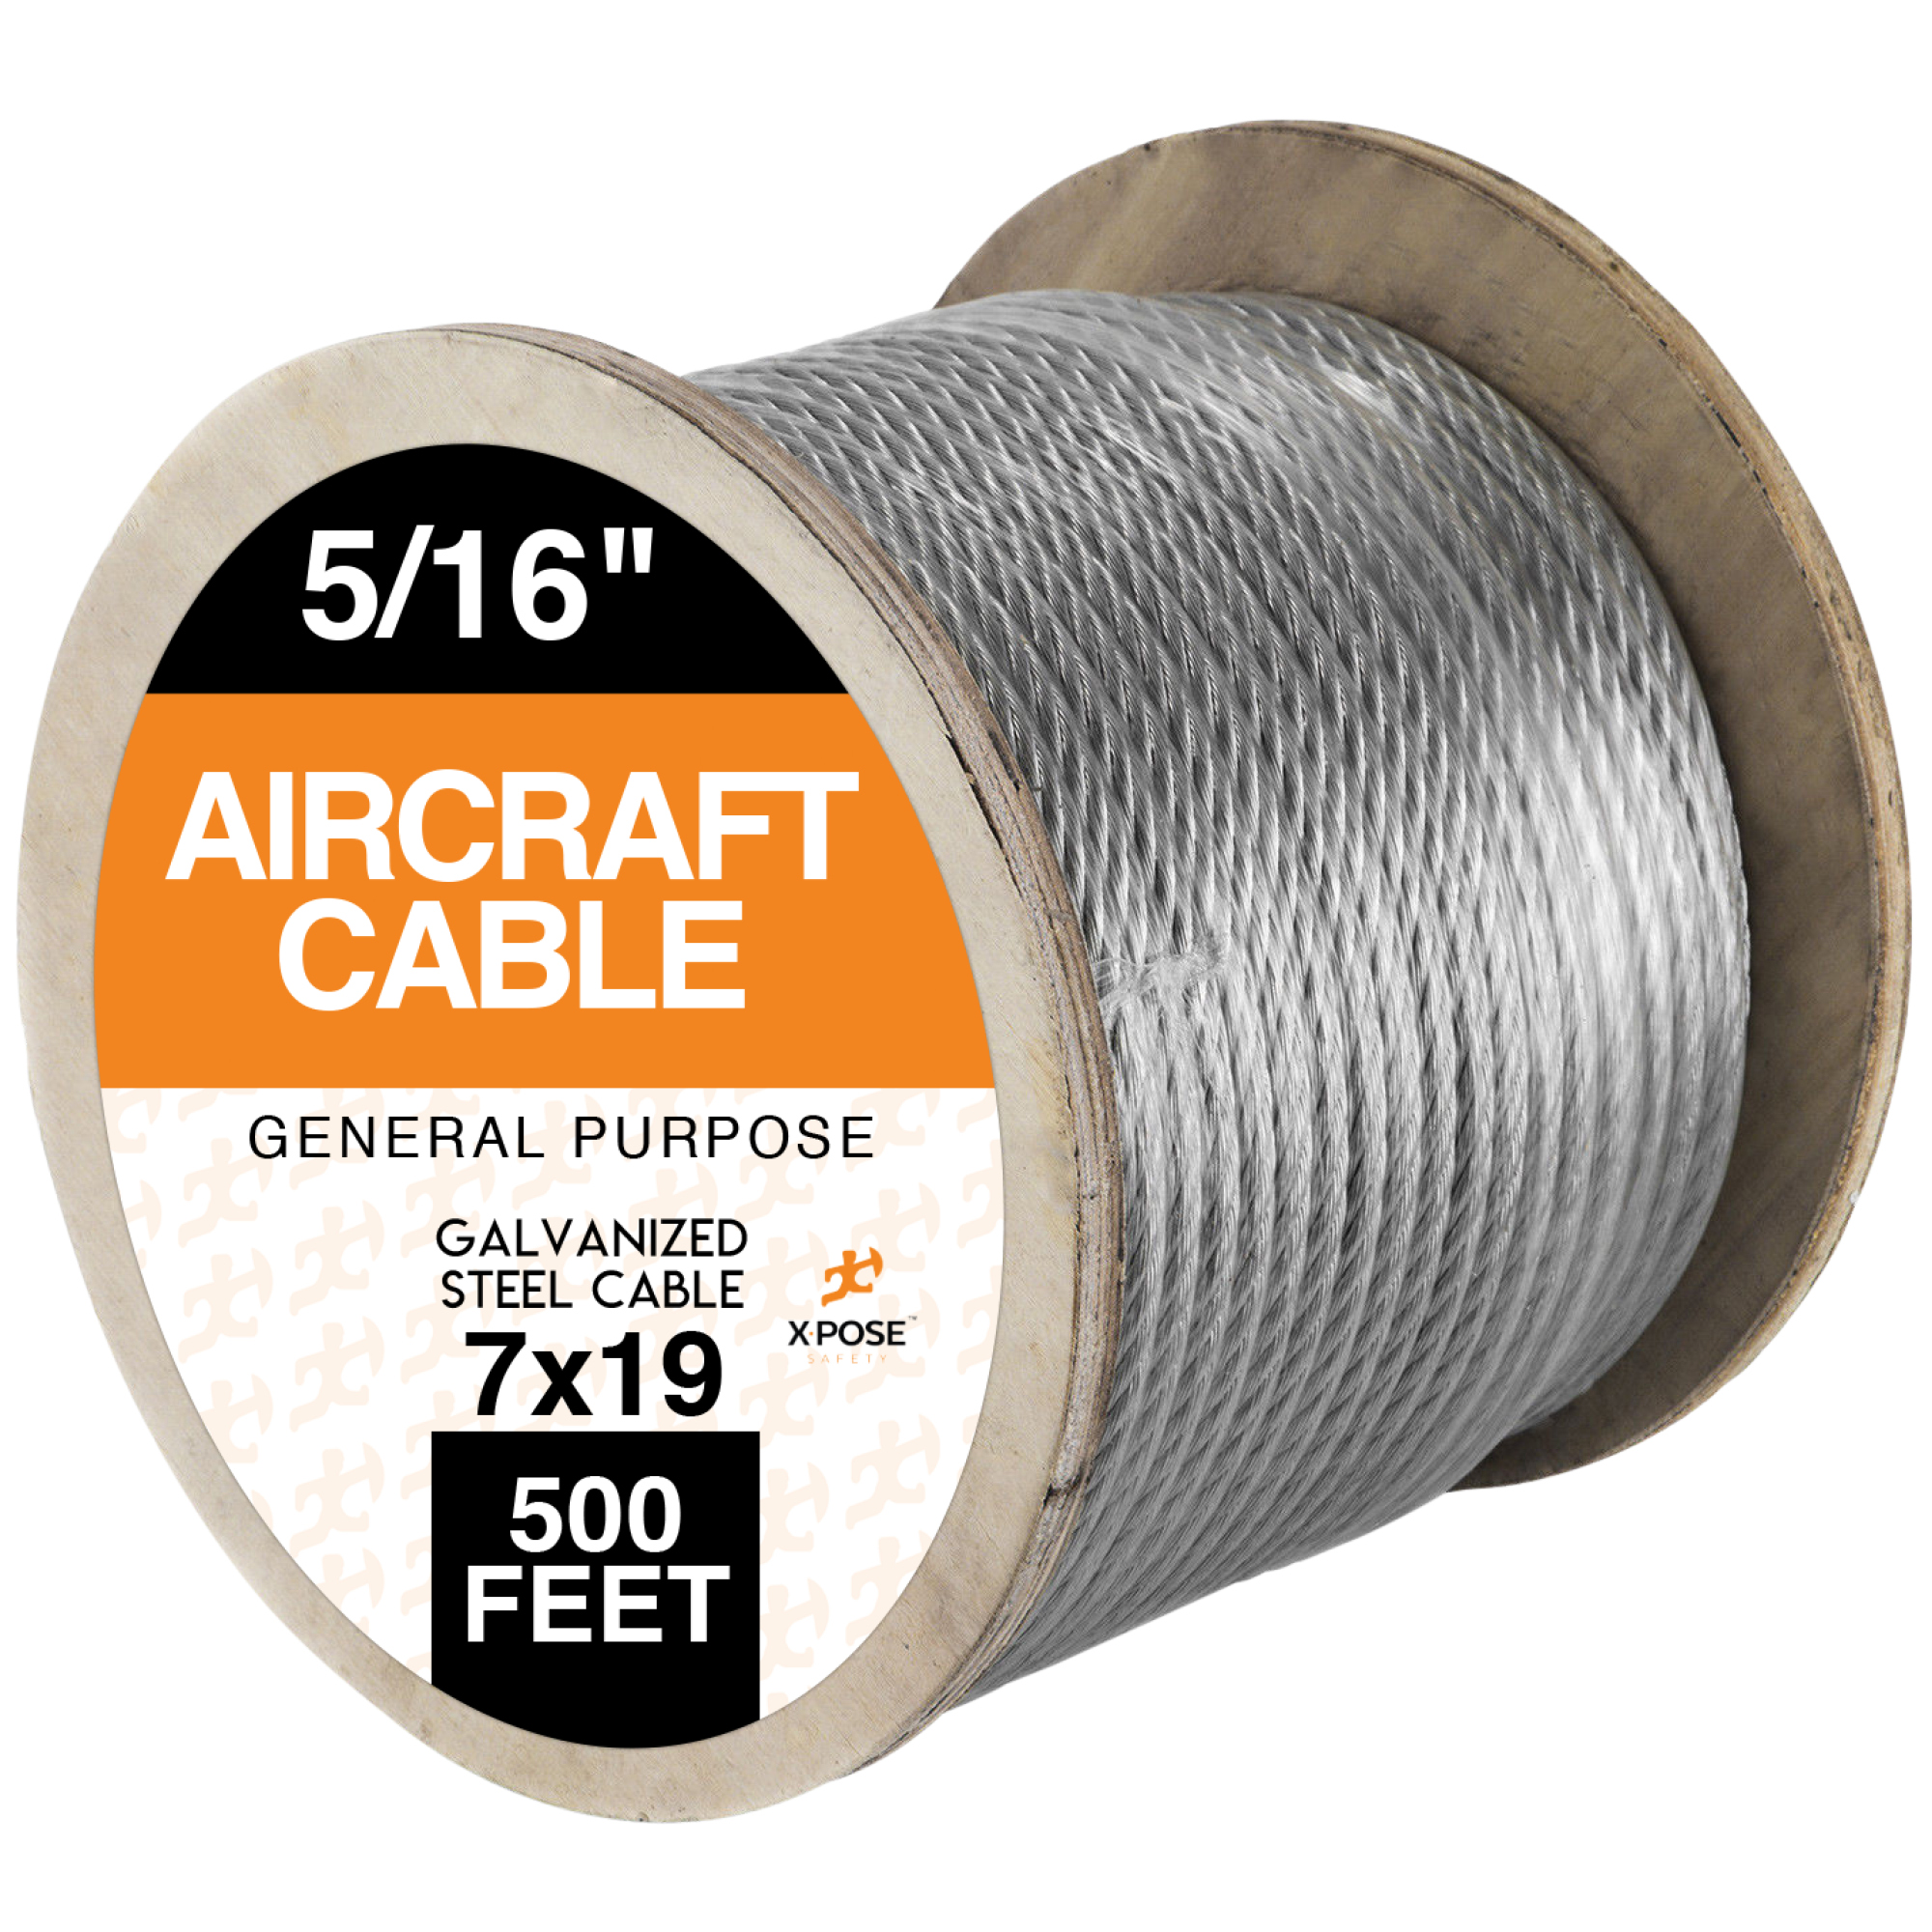 "Galvanized Steel Aircraft Cable Wire 7x19 Strand Core 5/16"" x 500' GWS500-516"